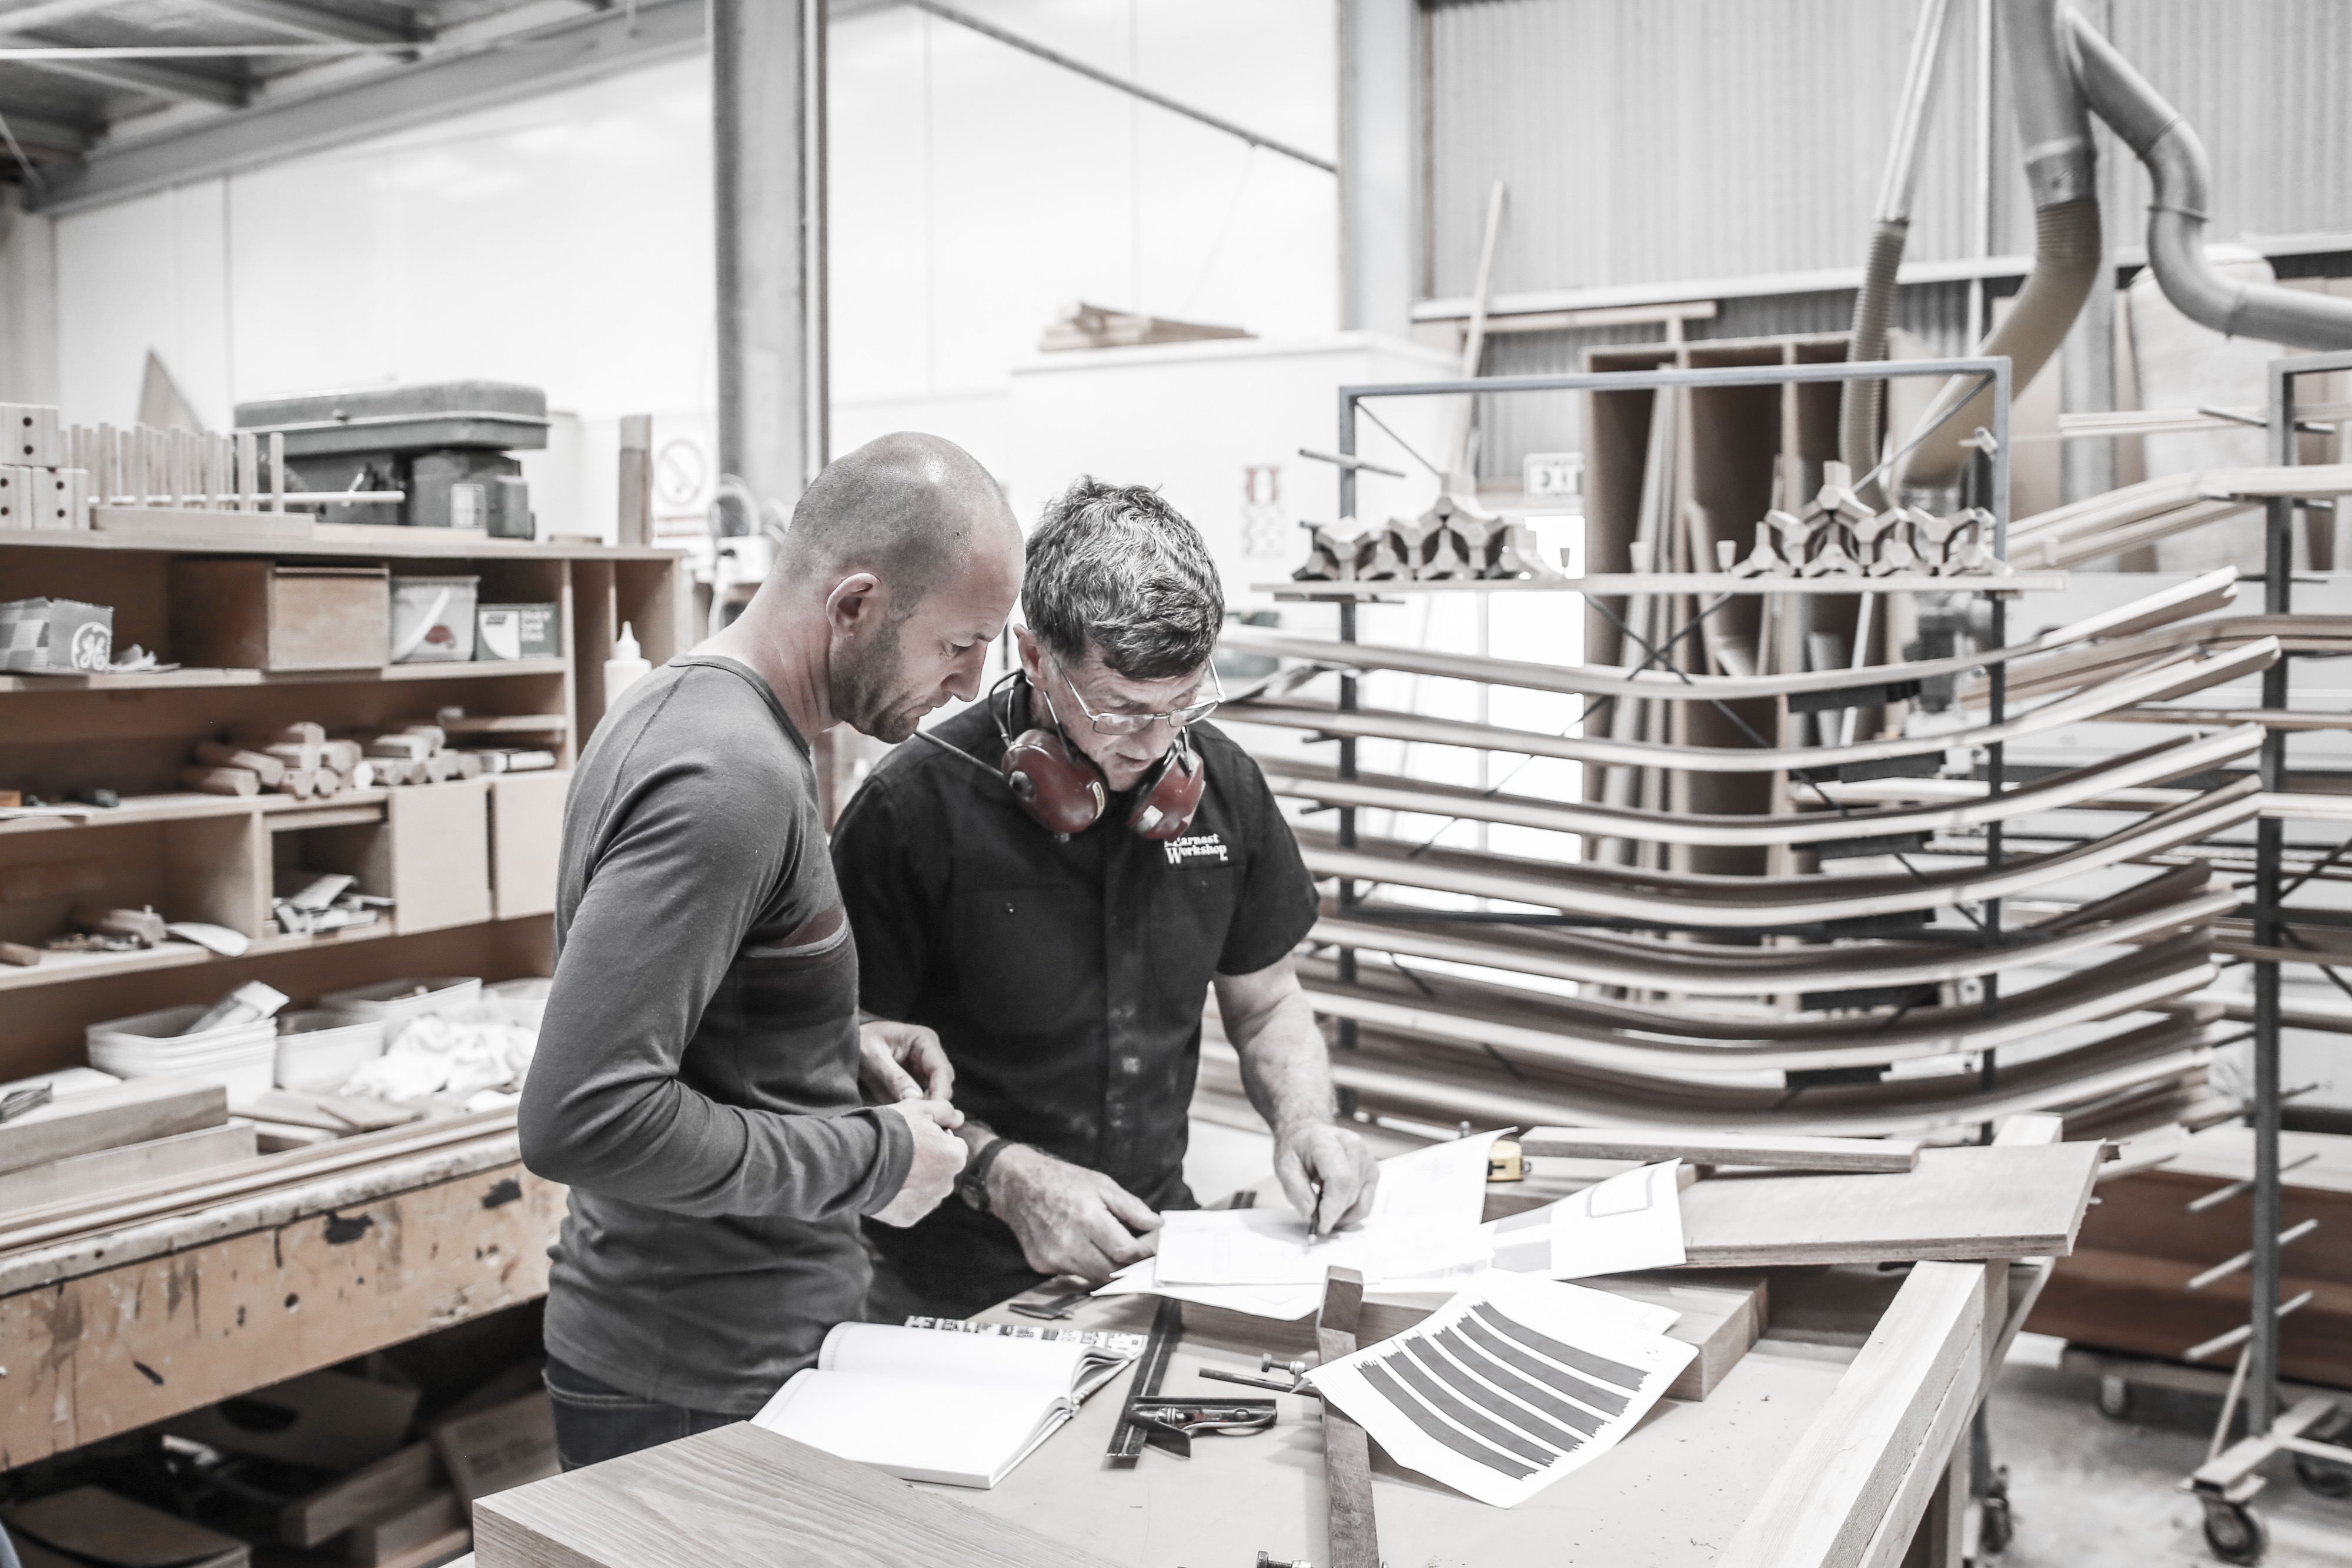 Designer Dan Gillingham (left) with furniture maker Lyndsay Fake: creating prototypes with quality, functionality and durability in mind. Photo: © The Earnest Workshop